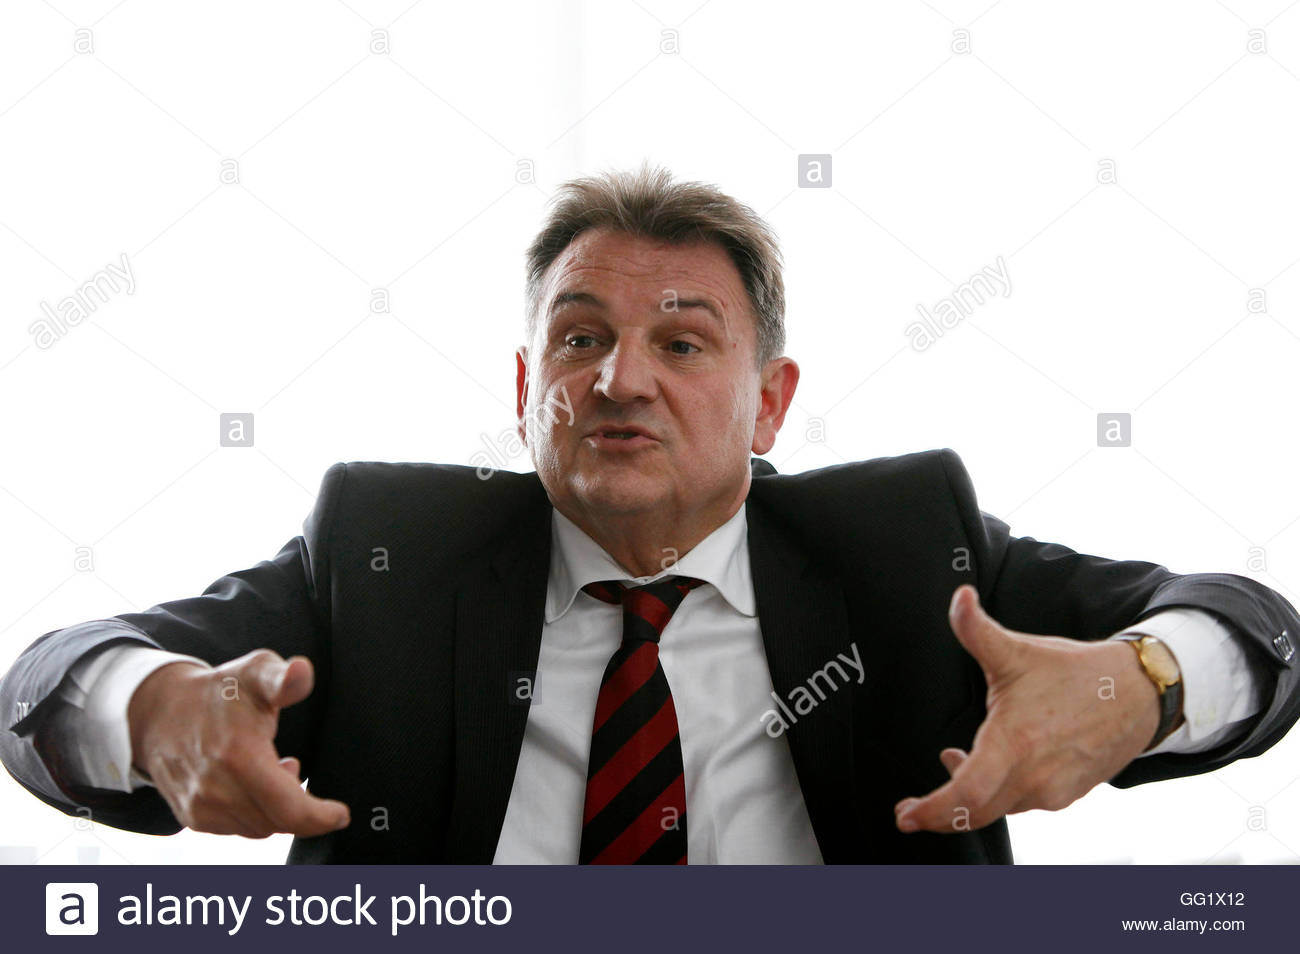 n deputy prime minister and minister of economy radimir minister and minister of economy radimir cacic gestures during an interview in zagreb 15 2012 not achieve its targeted 0 8 percent